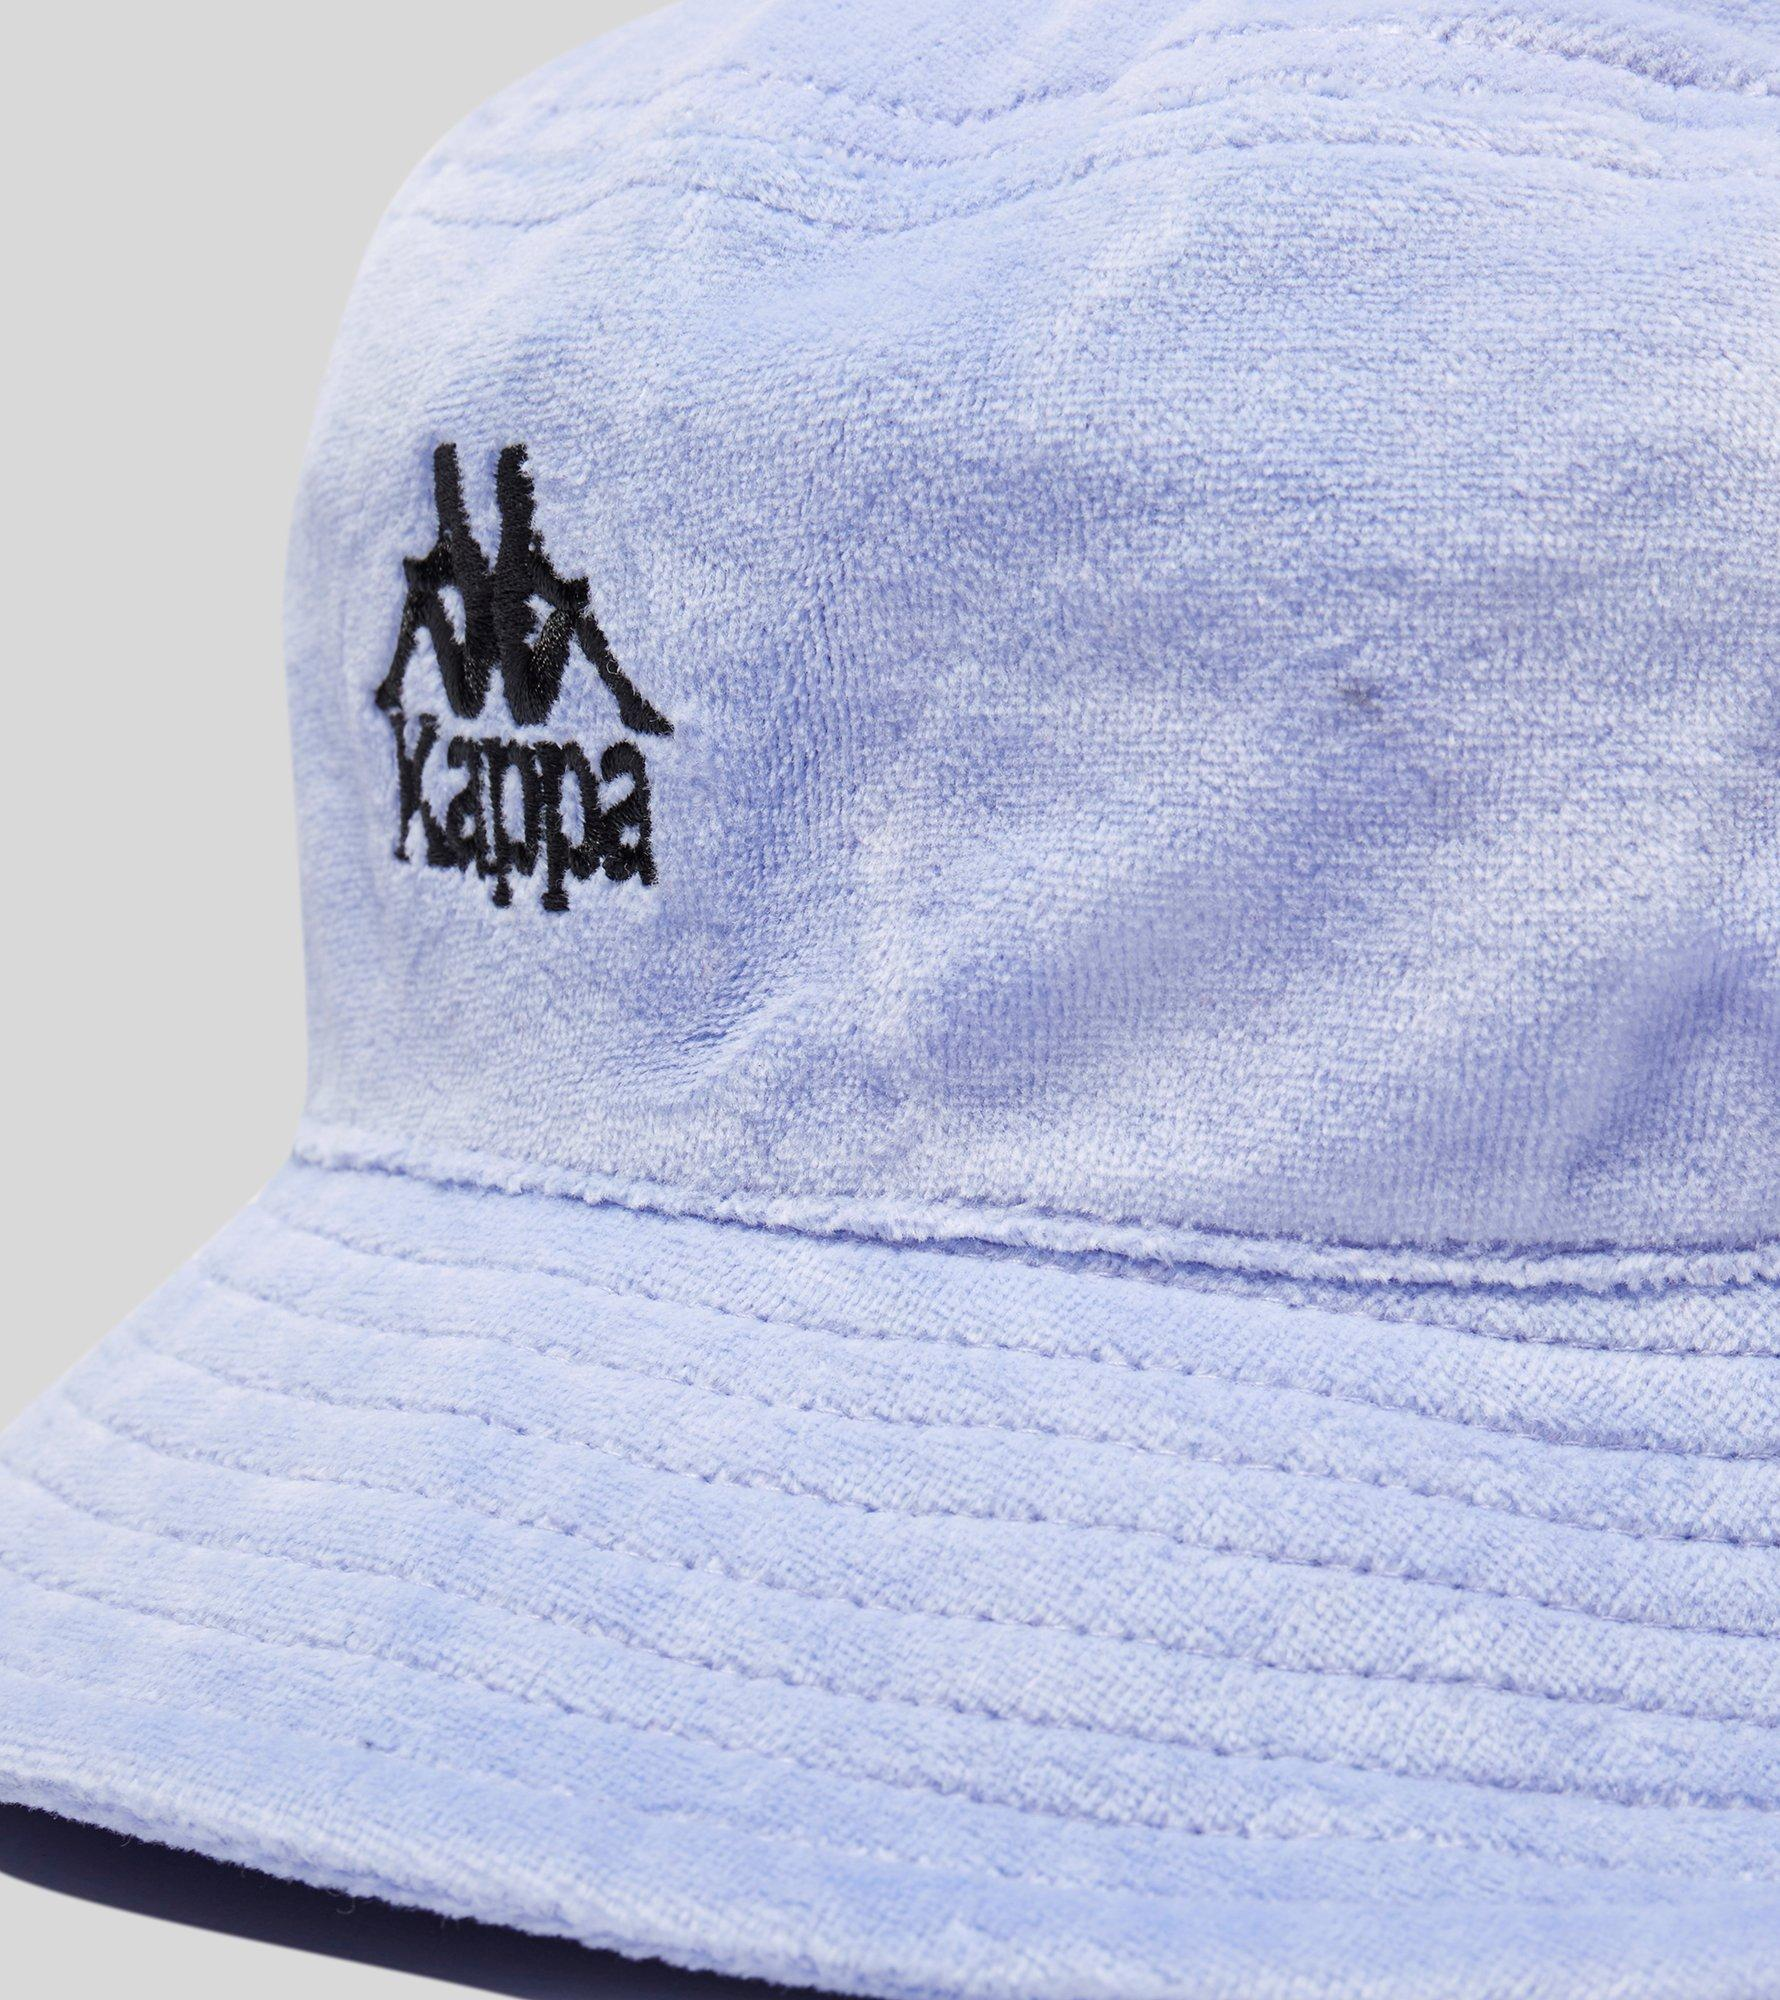 Lyst - Kappa Ayumen Bucket Hat in Blue for Men a5bc74a80d81